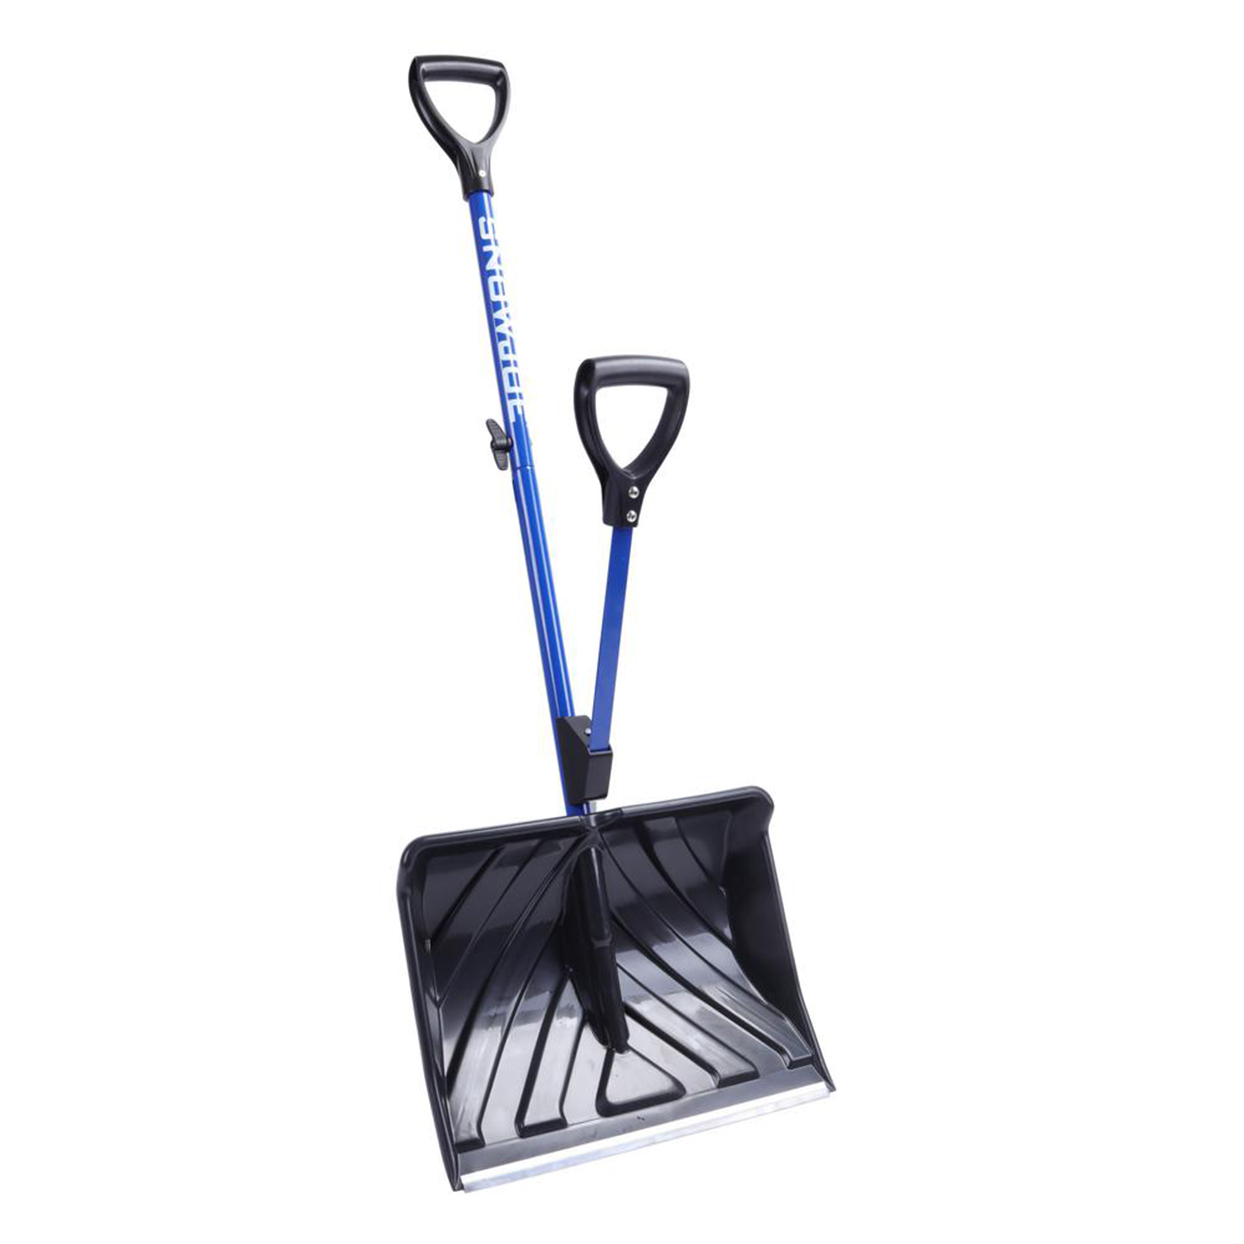 Snow Joe snow shovel with two handles on white background